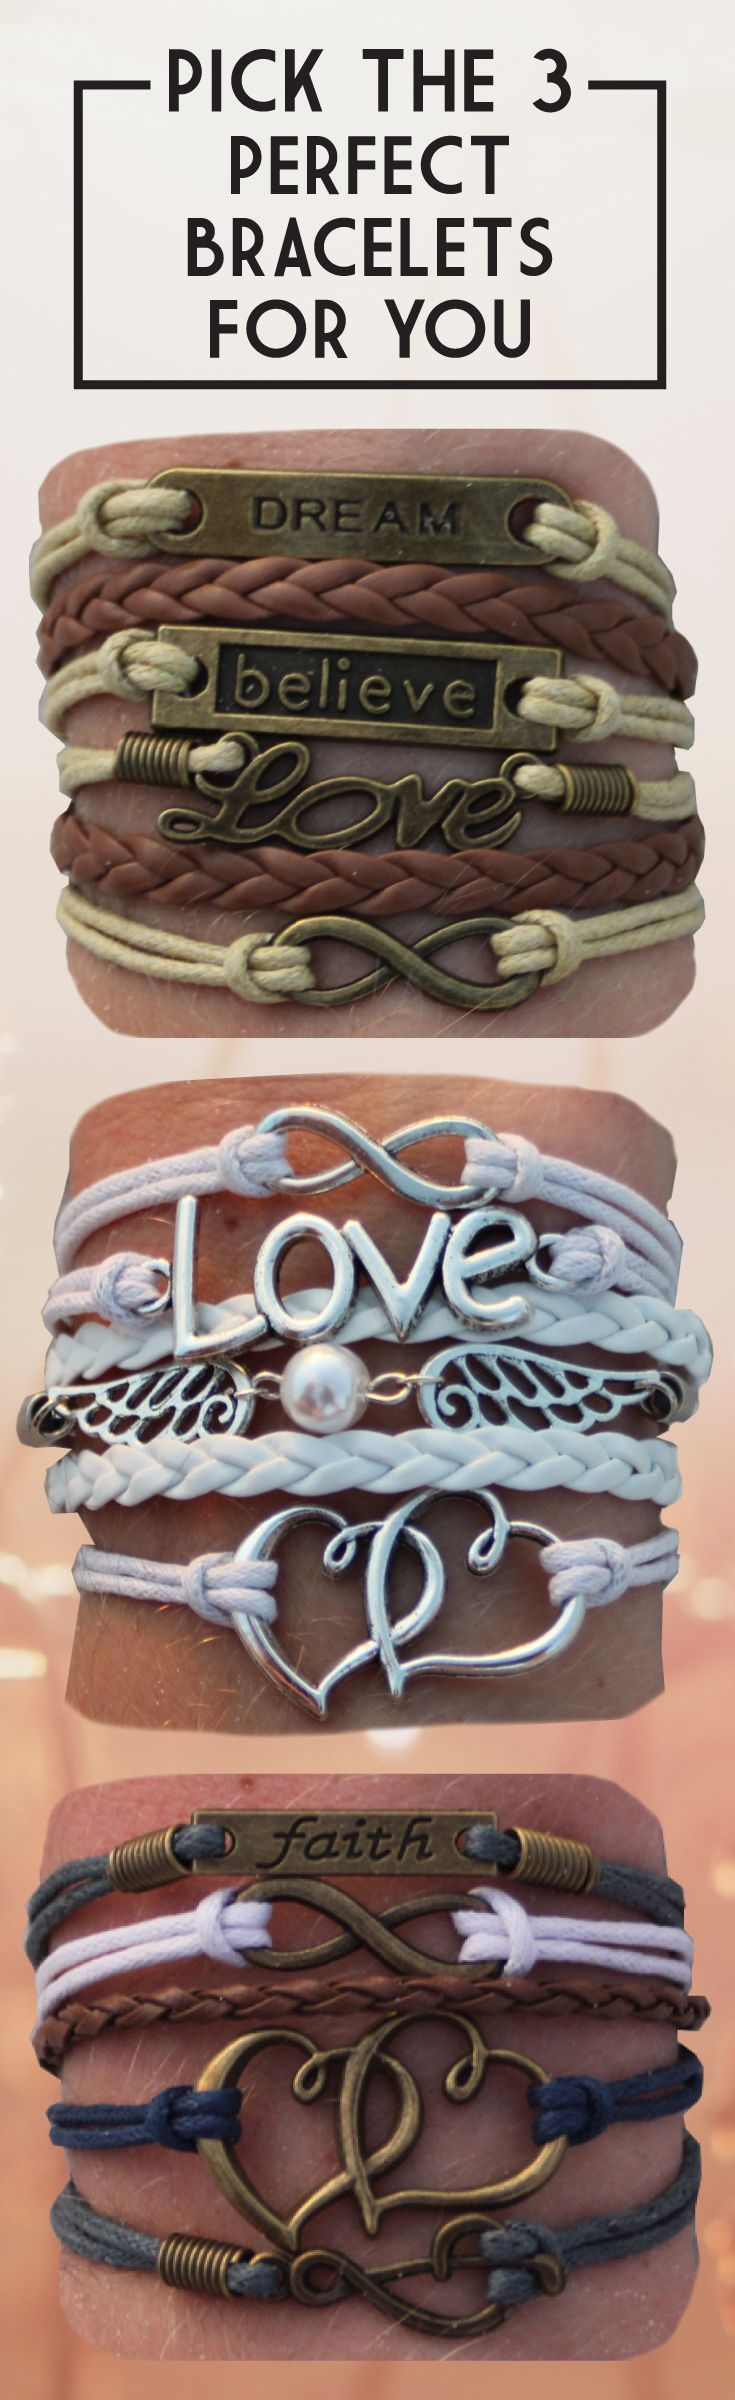 Choose your favorite 3 bracelets for FREE - just pay shipping! Over 100 designs and adding more monthly. Free bracelet deal ends 12/31/17. Coupon: 3forfree --> http://www.gomodestly.com/pinterest-sale-3-for-free/